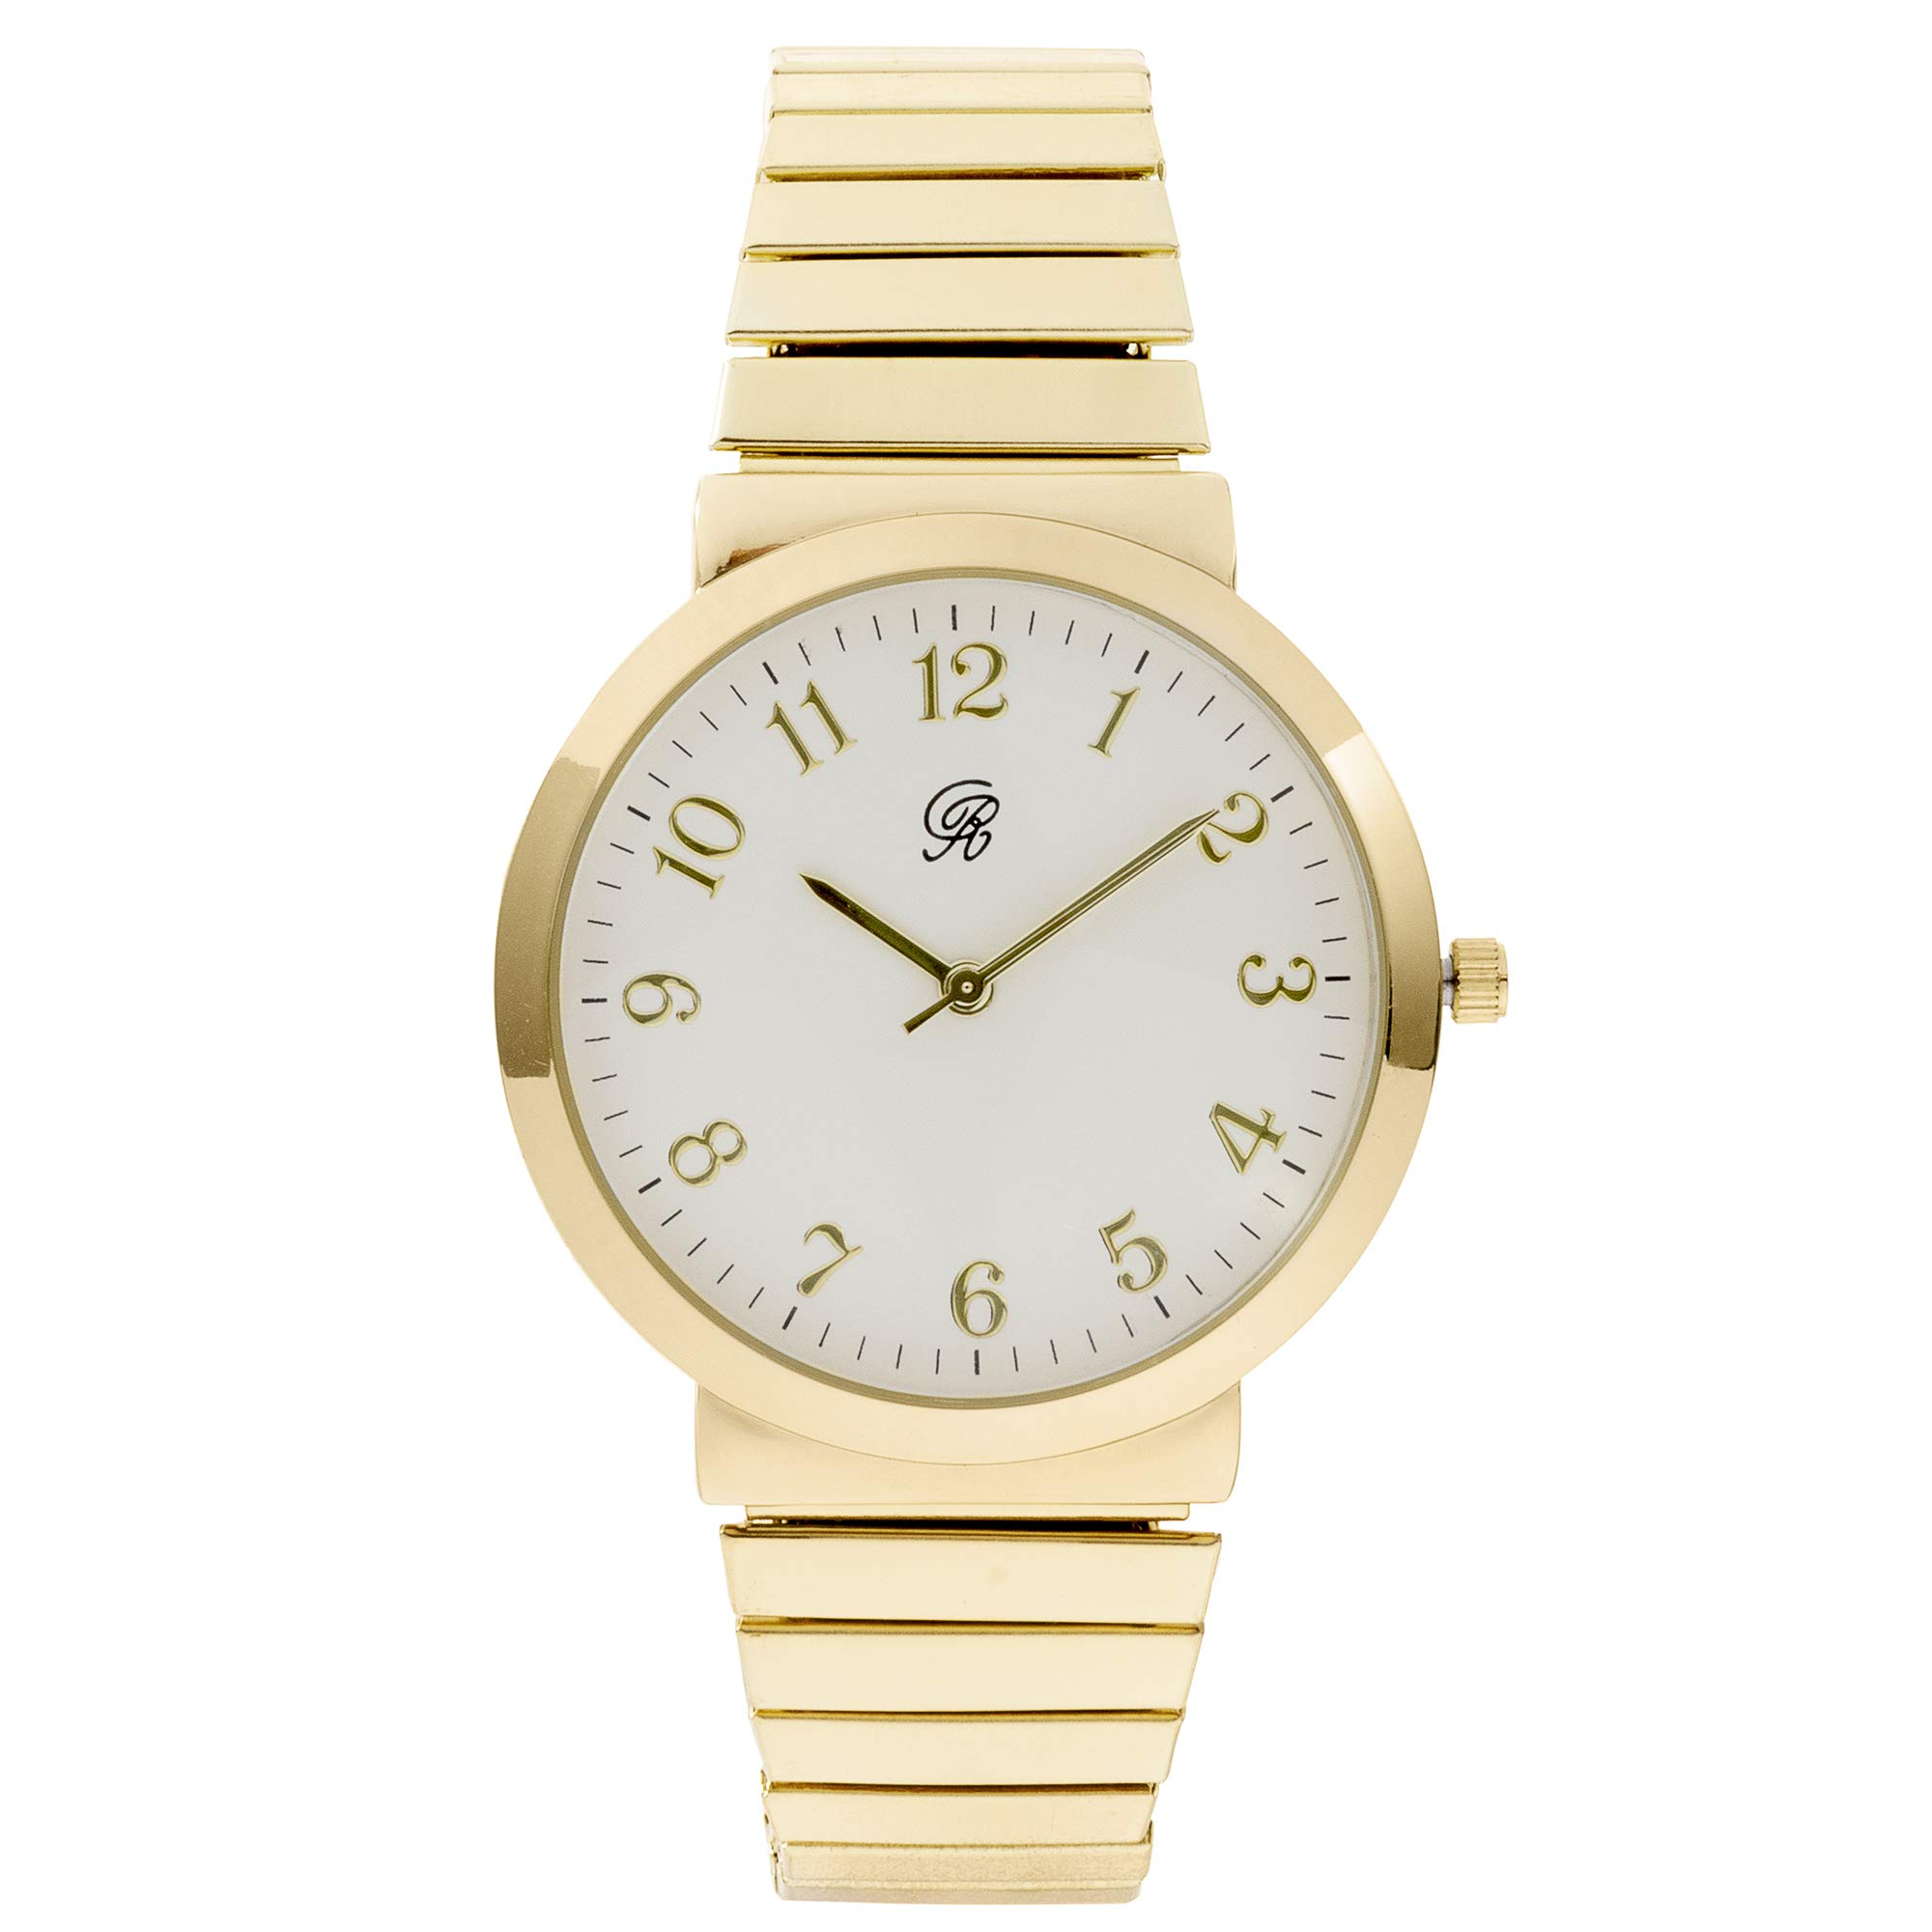 Unisex Gold Stretch Band Classic Easy Reader Watch with Clear Gold Arabic Numbers on Dial Medium Size Face - 8197 Gold